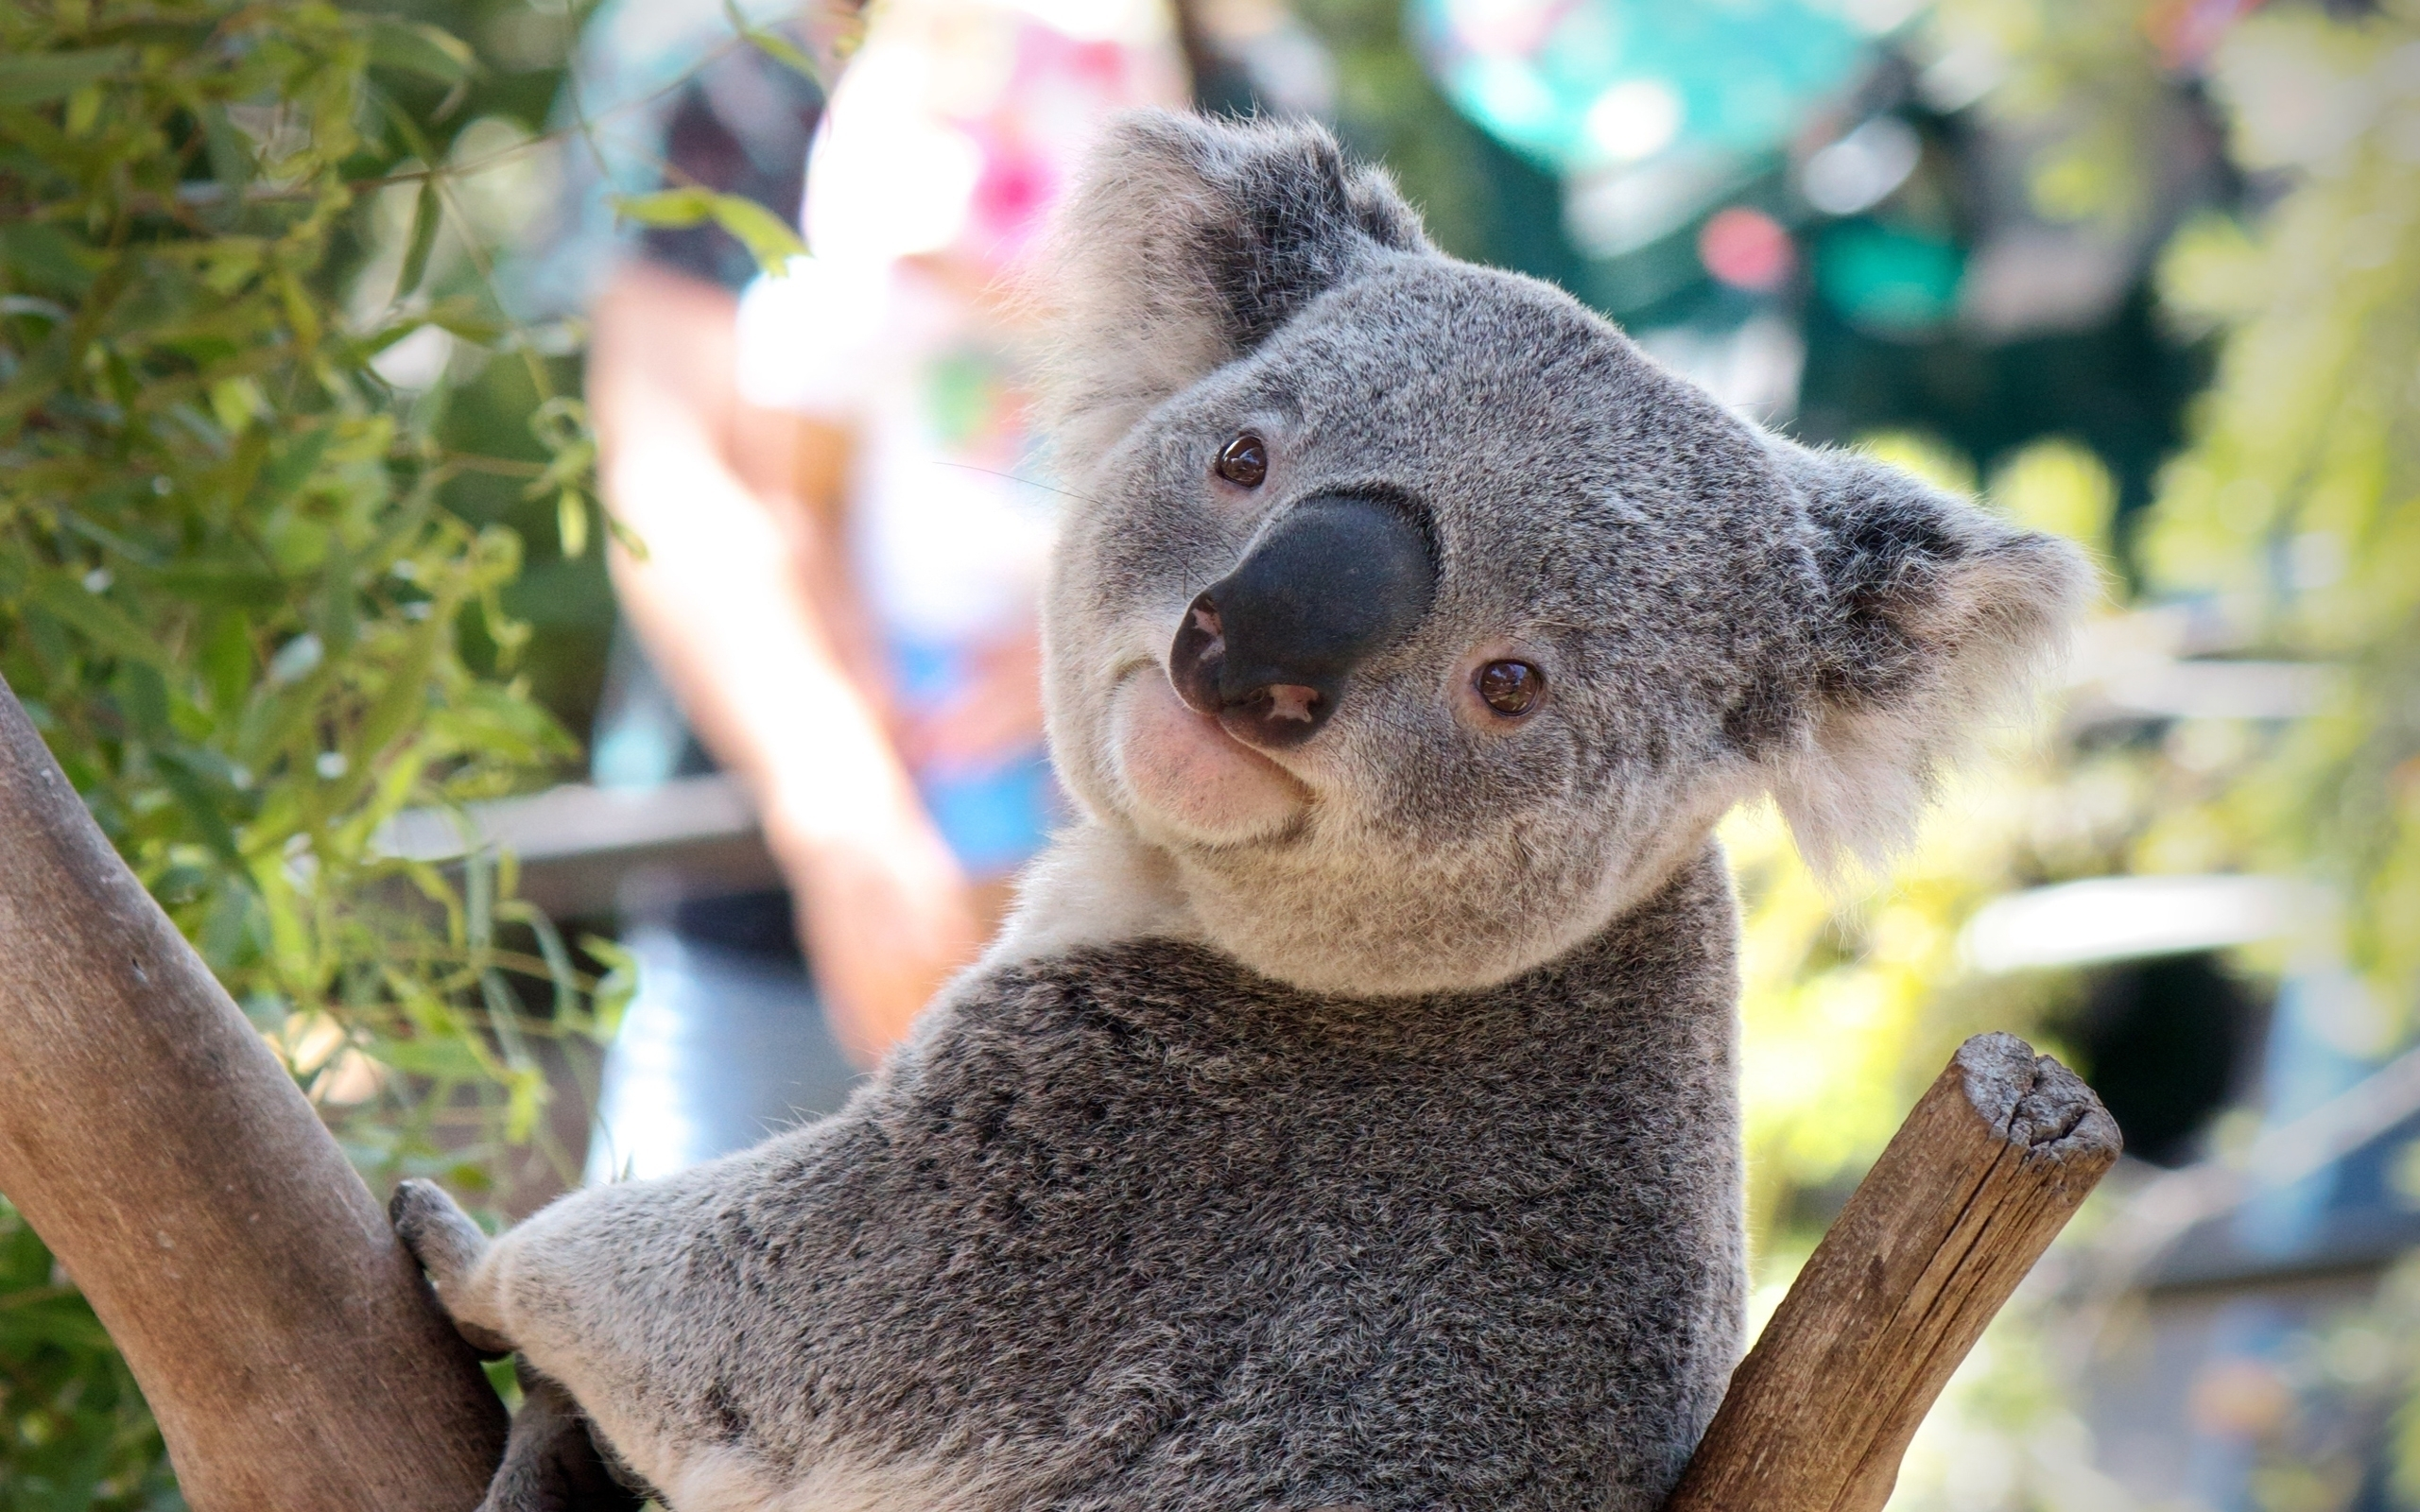 47494 download wallpaper Animals, Koalas screensavers and pictures for free